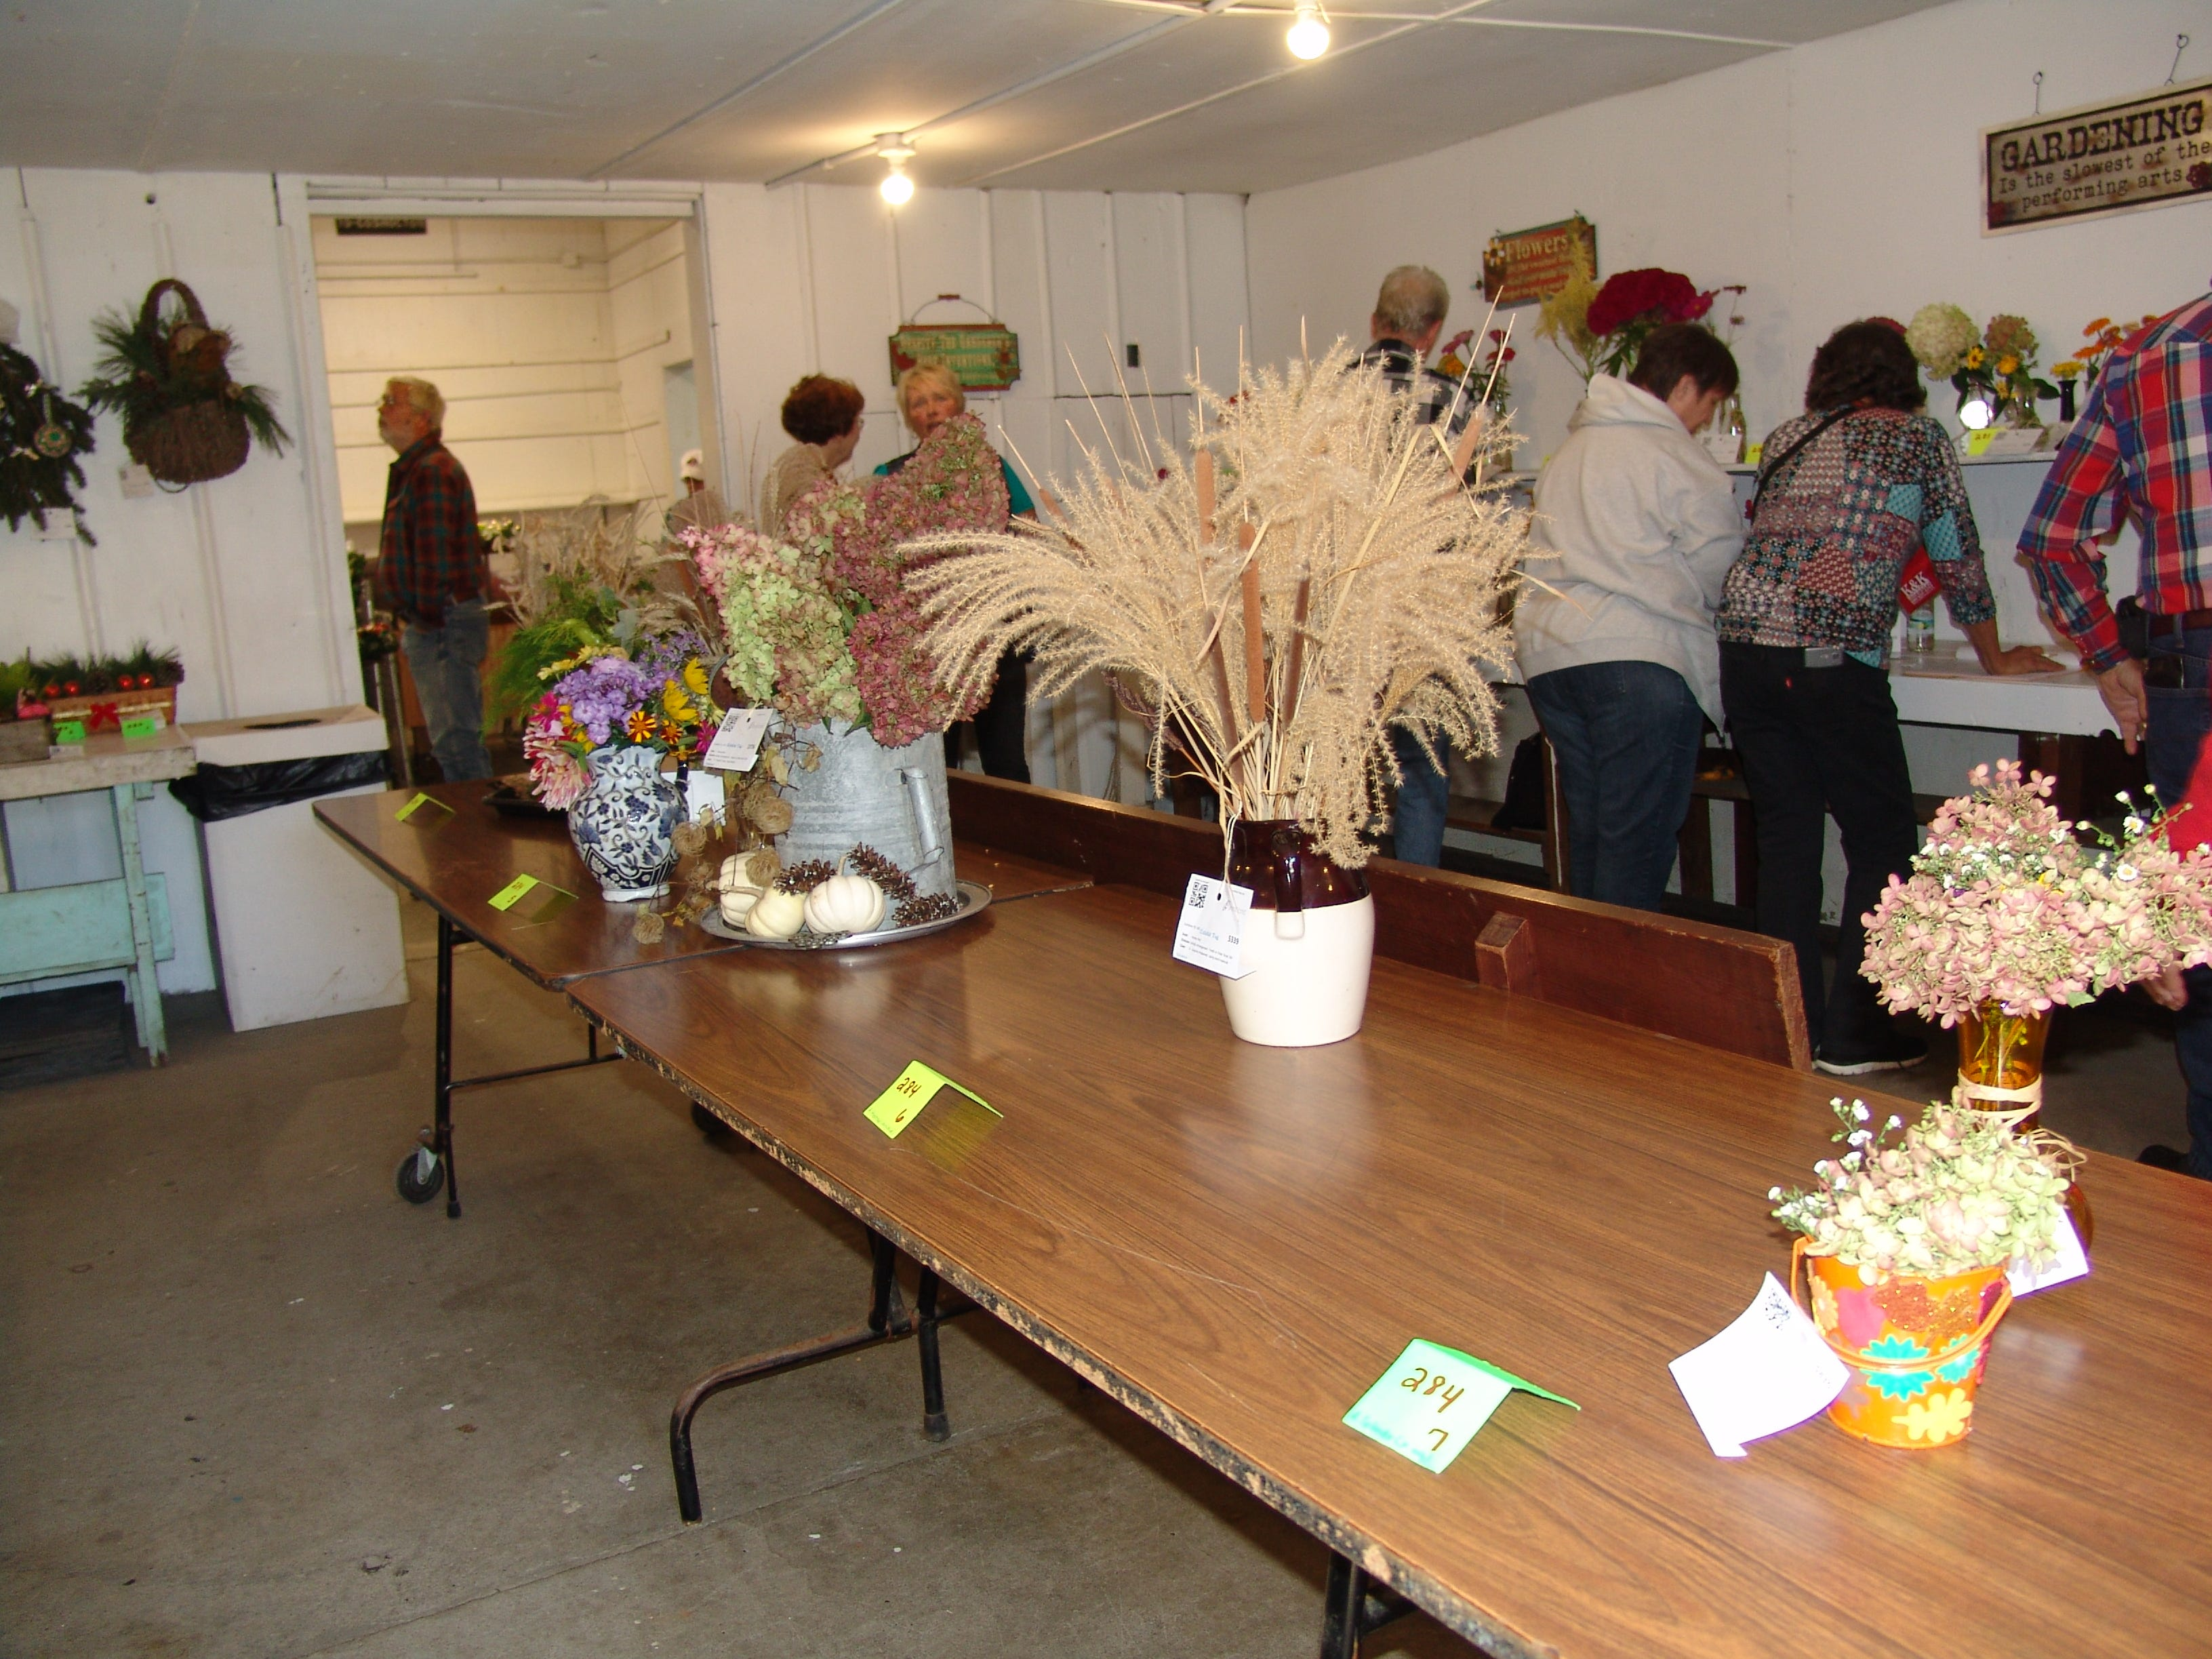 Visitors gather in the Art Hall during judging in various floral divisions.